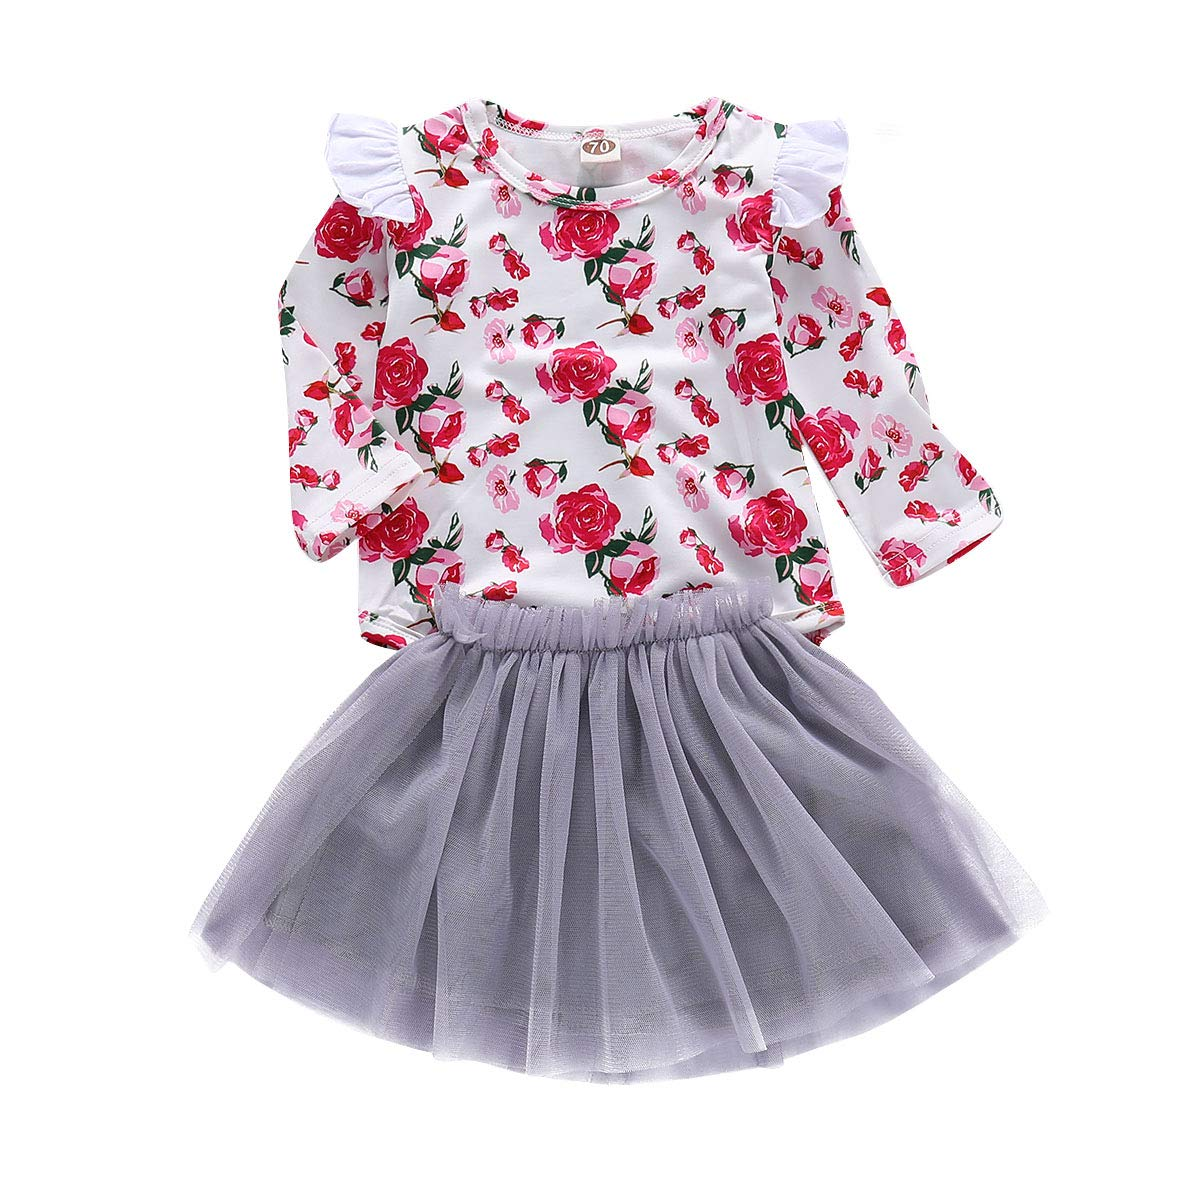 Lahyra 2PCS Baby Girl Floral Printed Lace Ruffle Top+Bow Short Pants Outfits Clothing Set